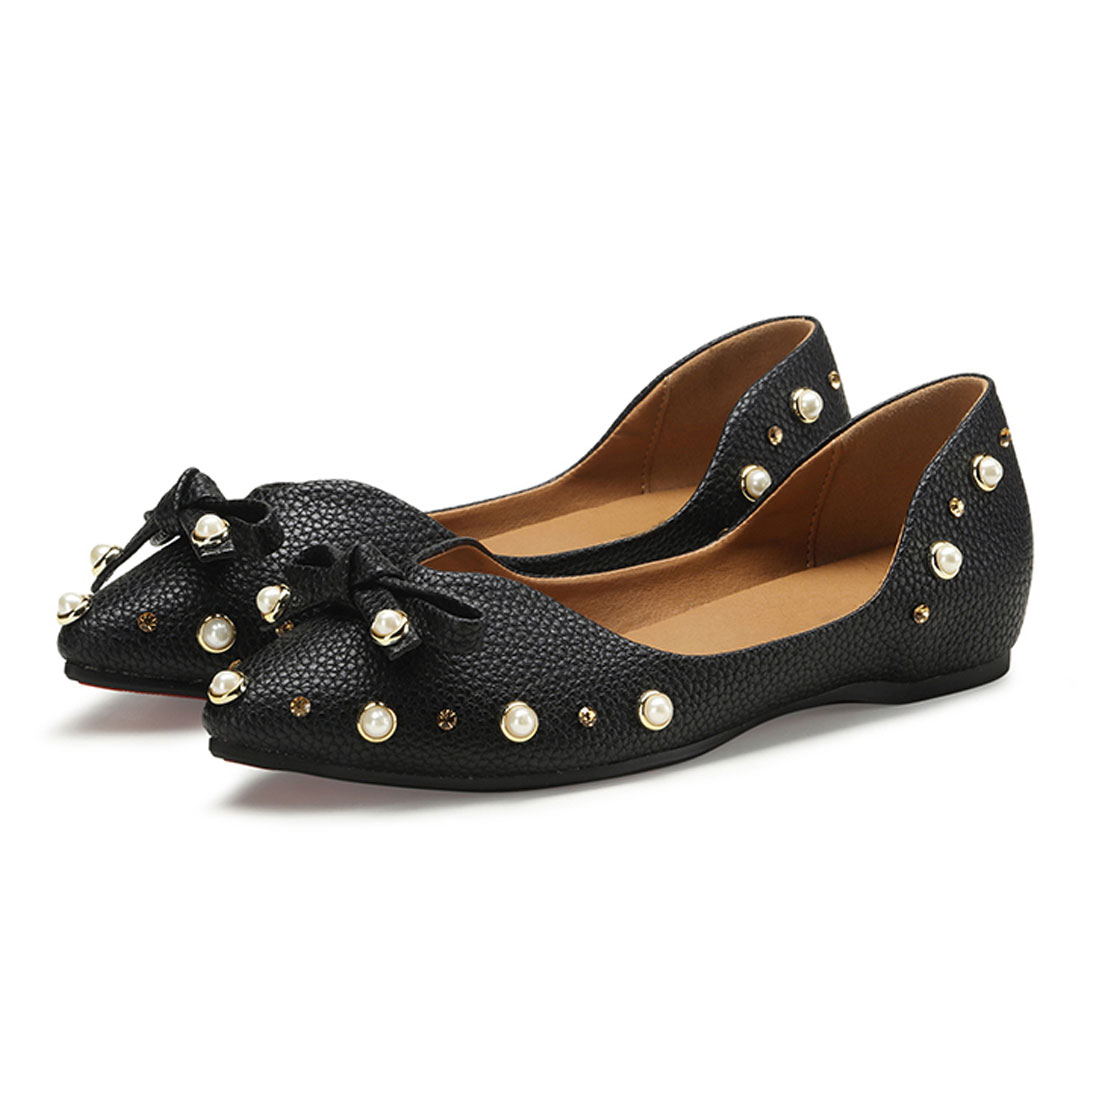 2018 Women Pointed Leather With Rivets Diamond Casual Dress Flat Shoes YH1182